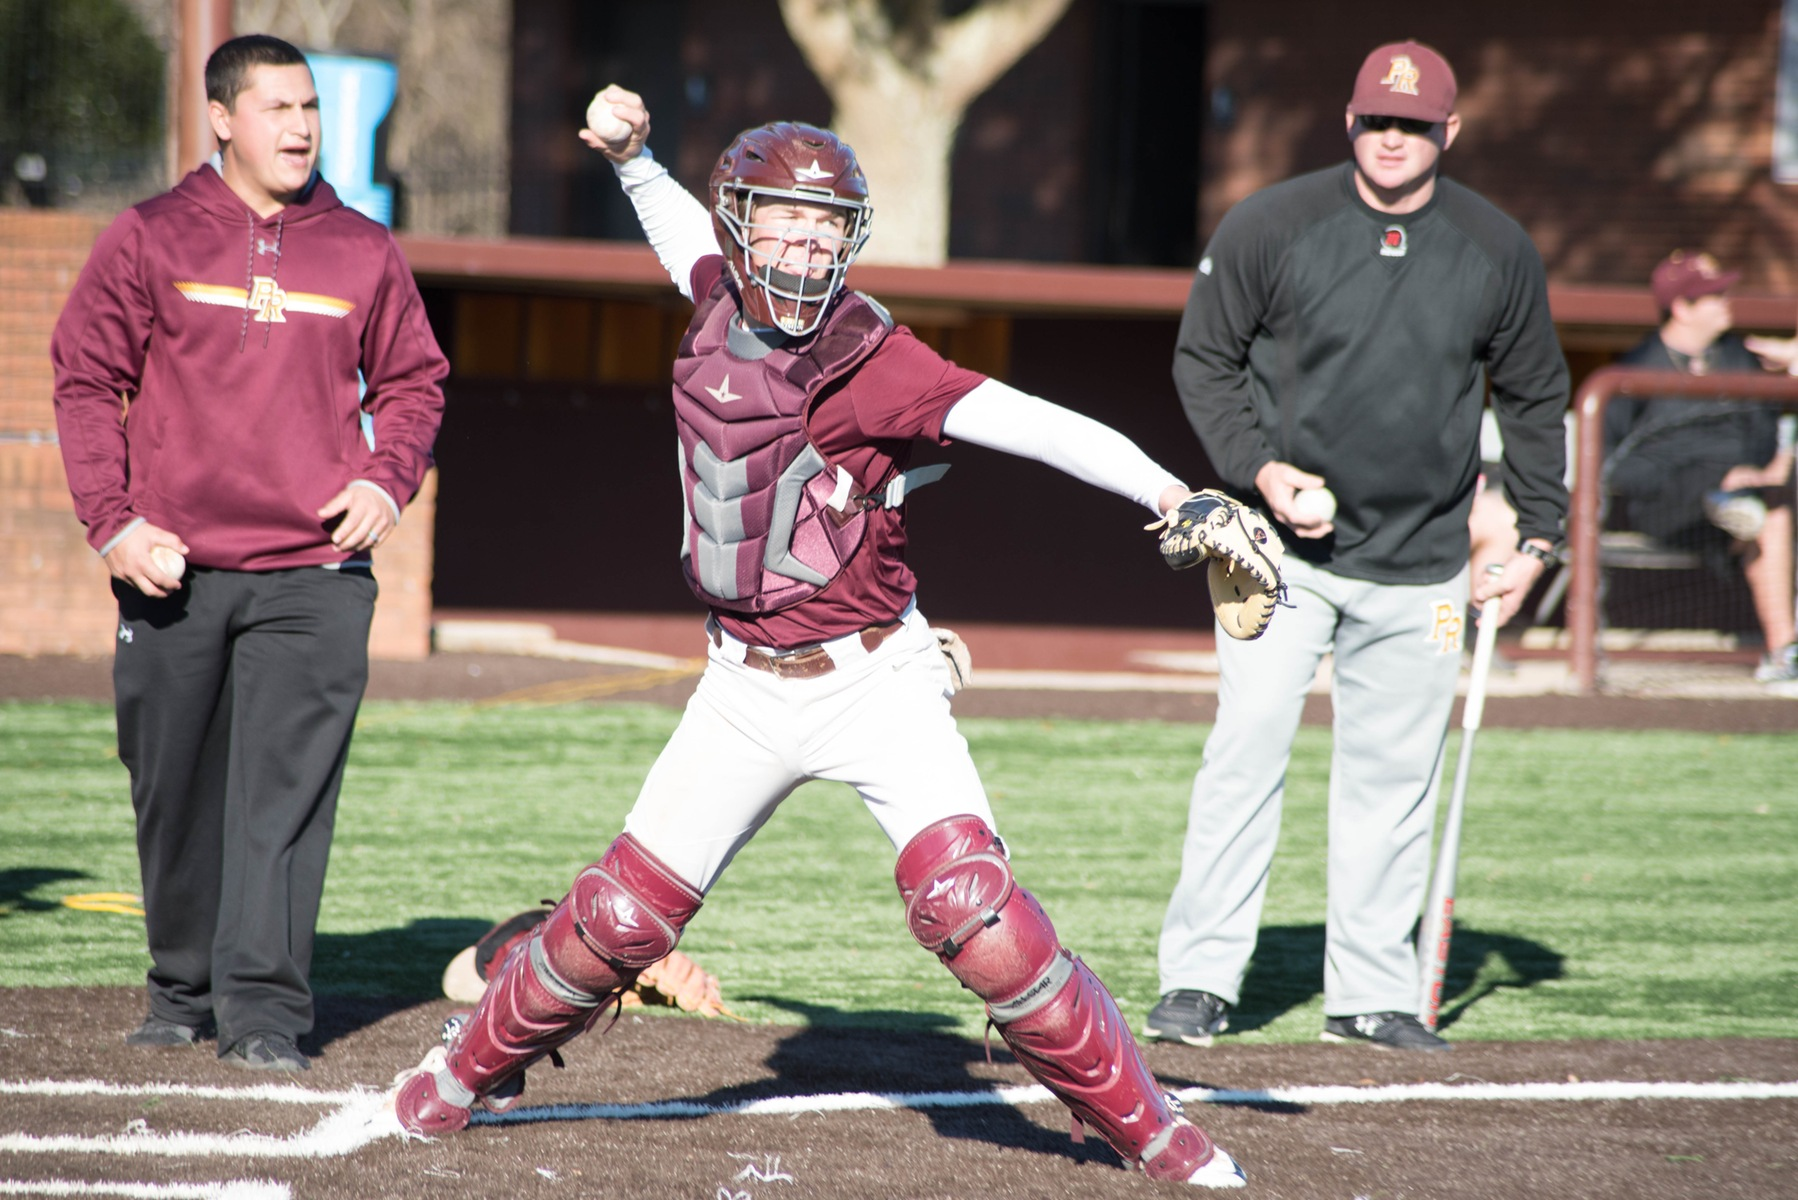 Pearl River Baseball springs back into action